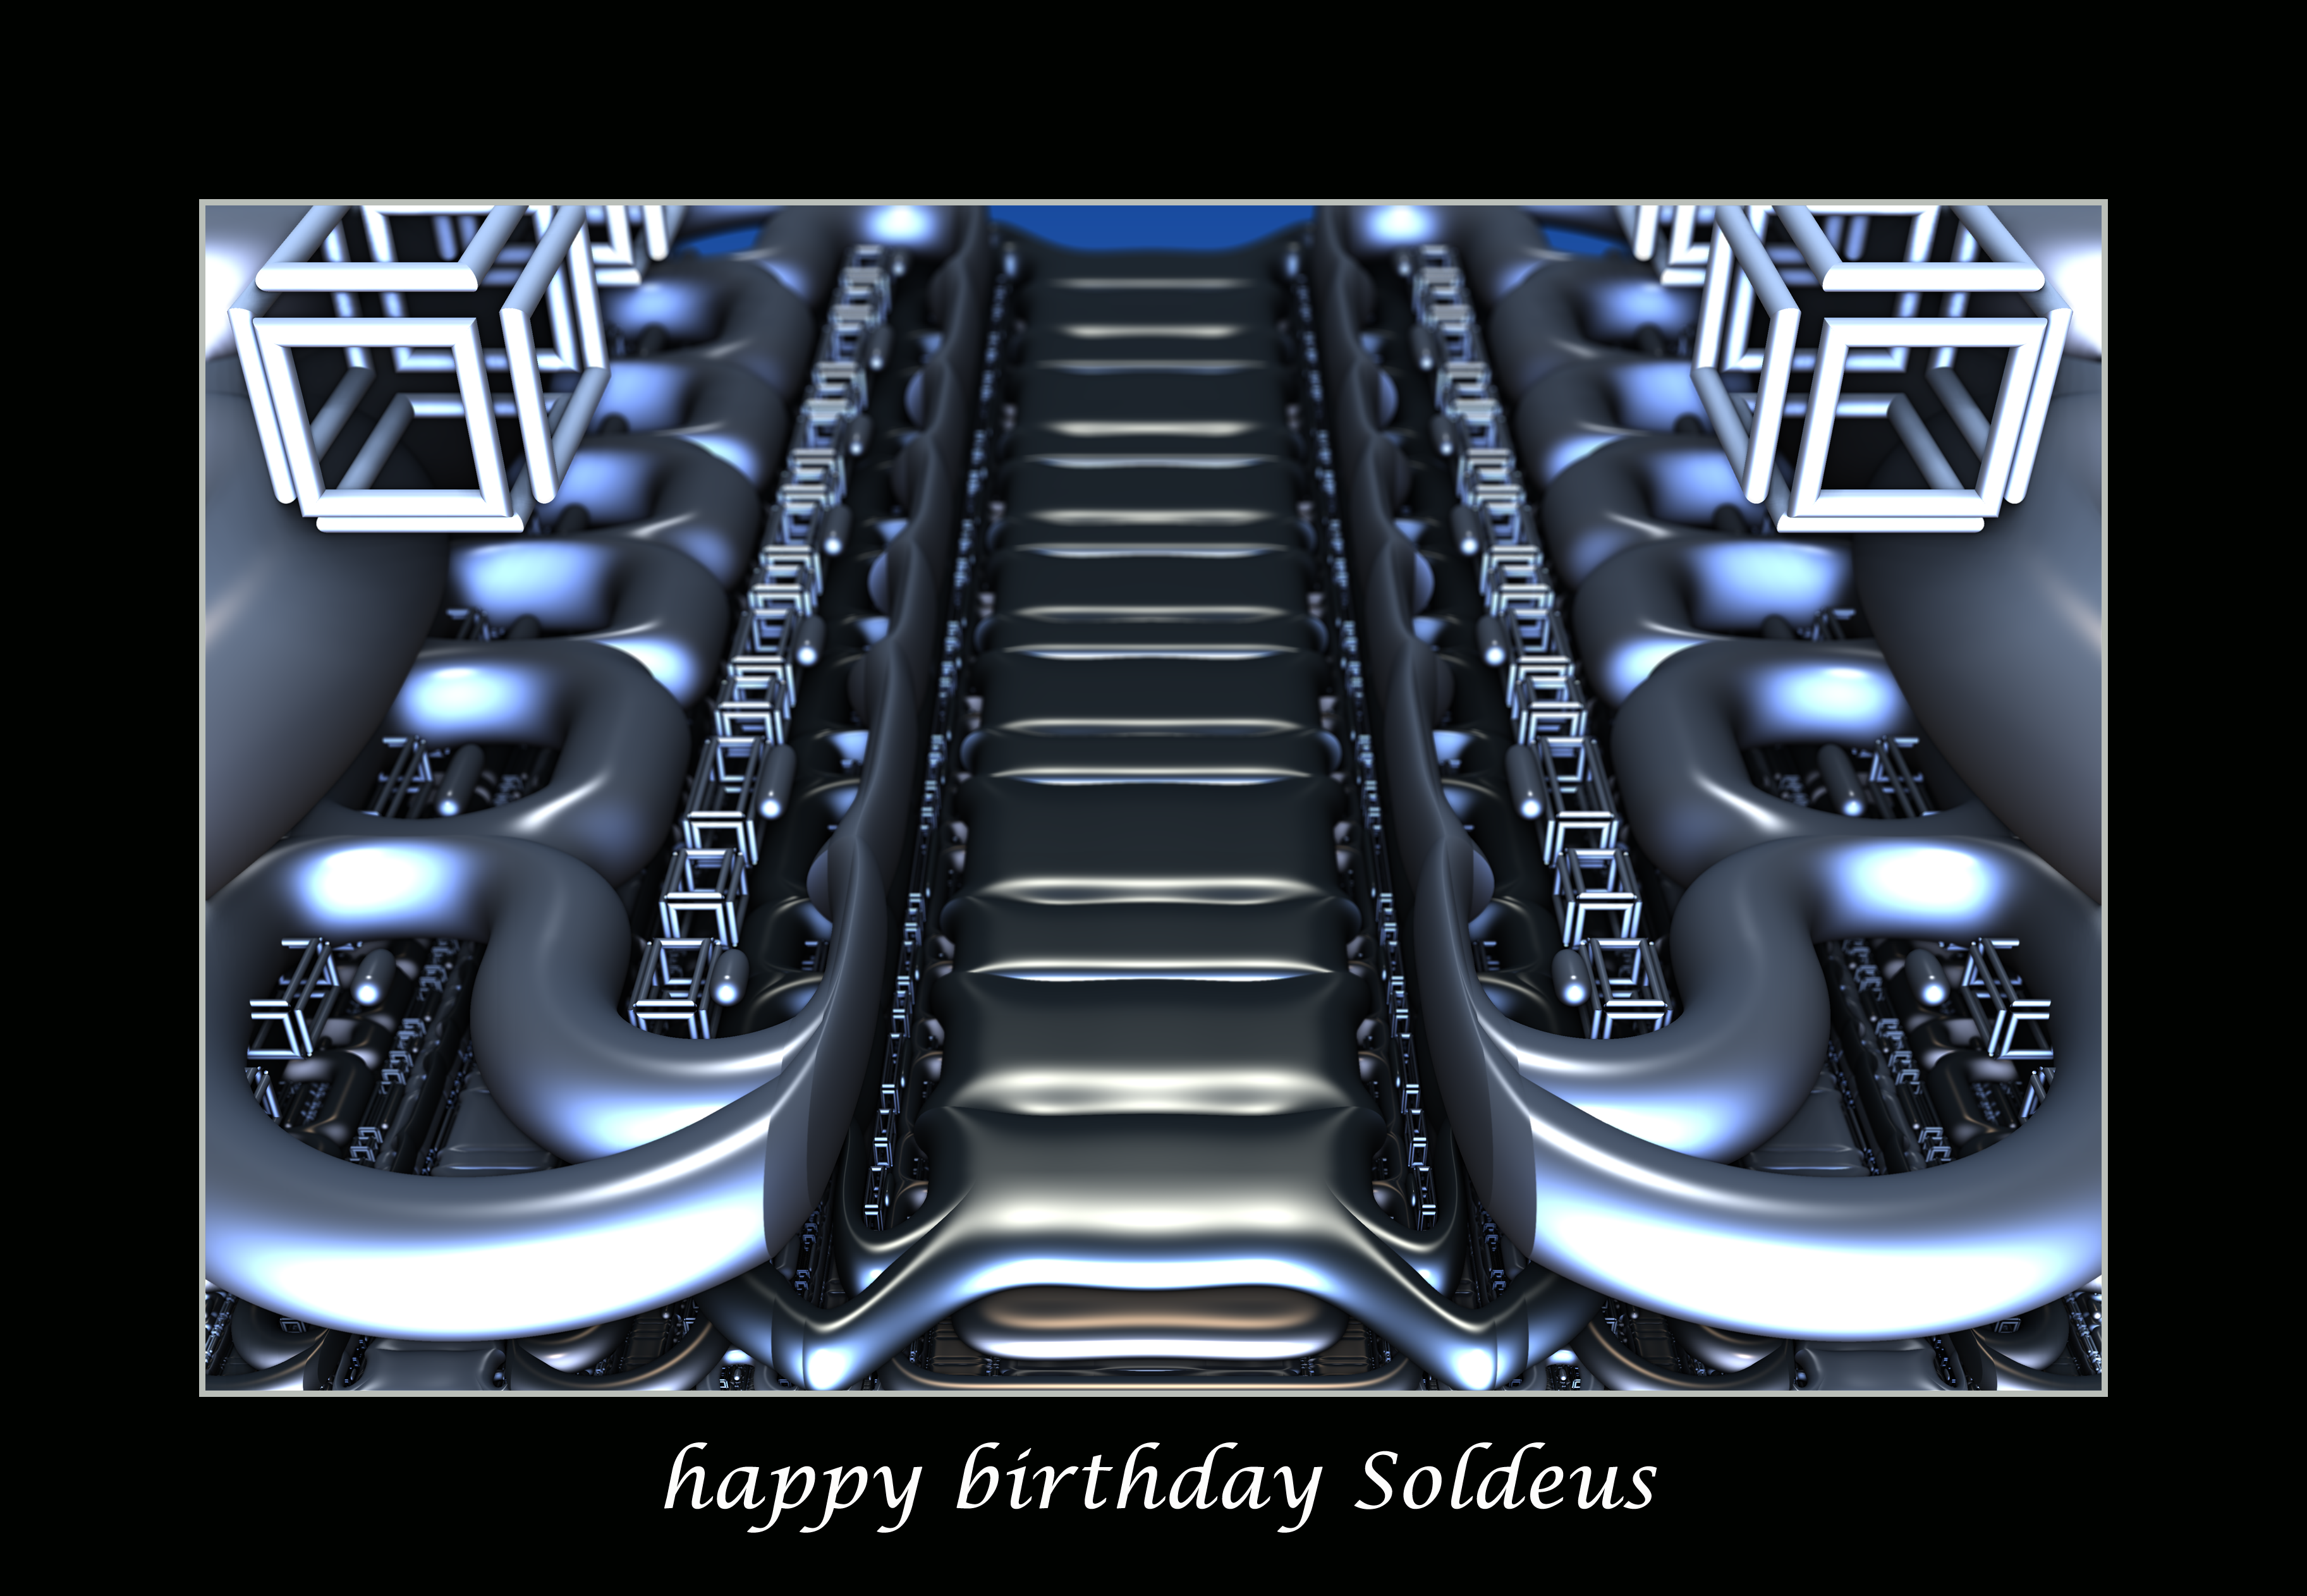 happy birthday Soldeus by fraterchaos